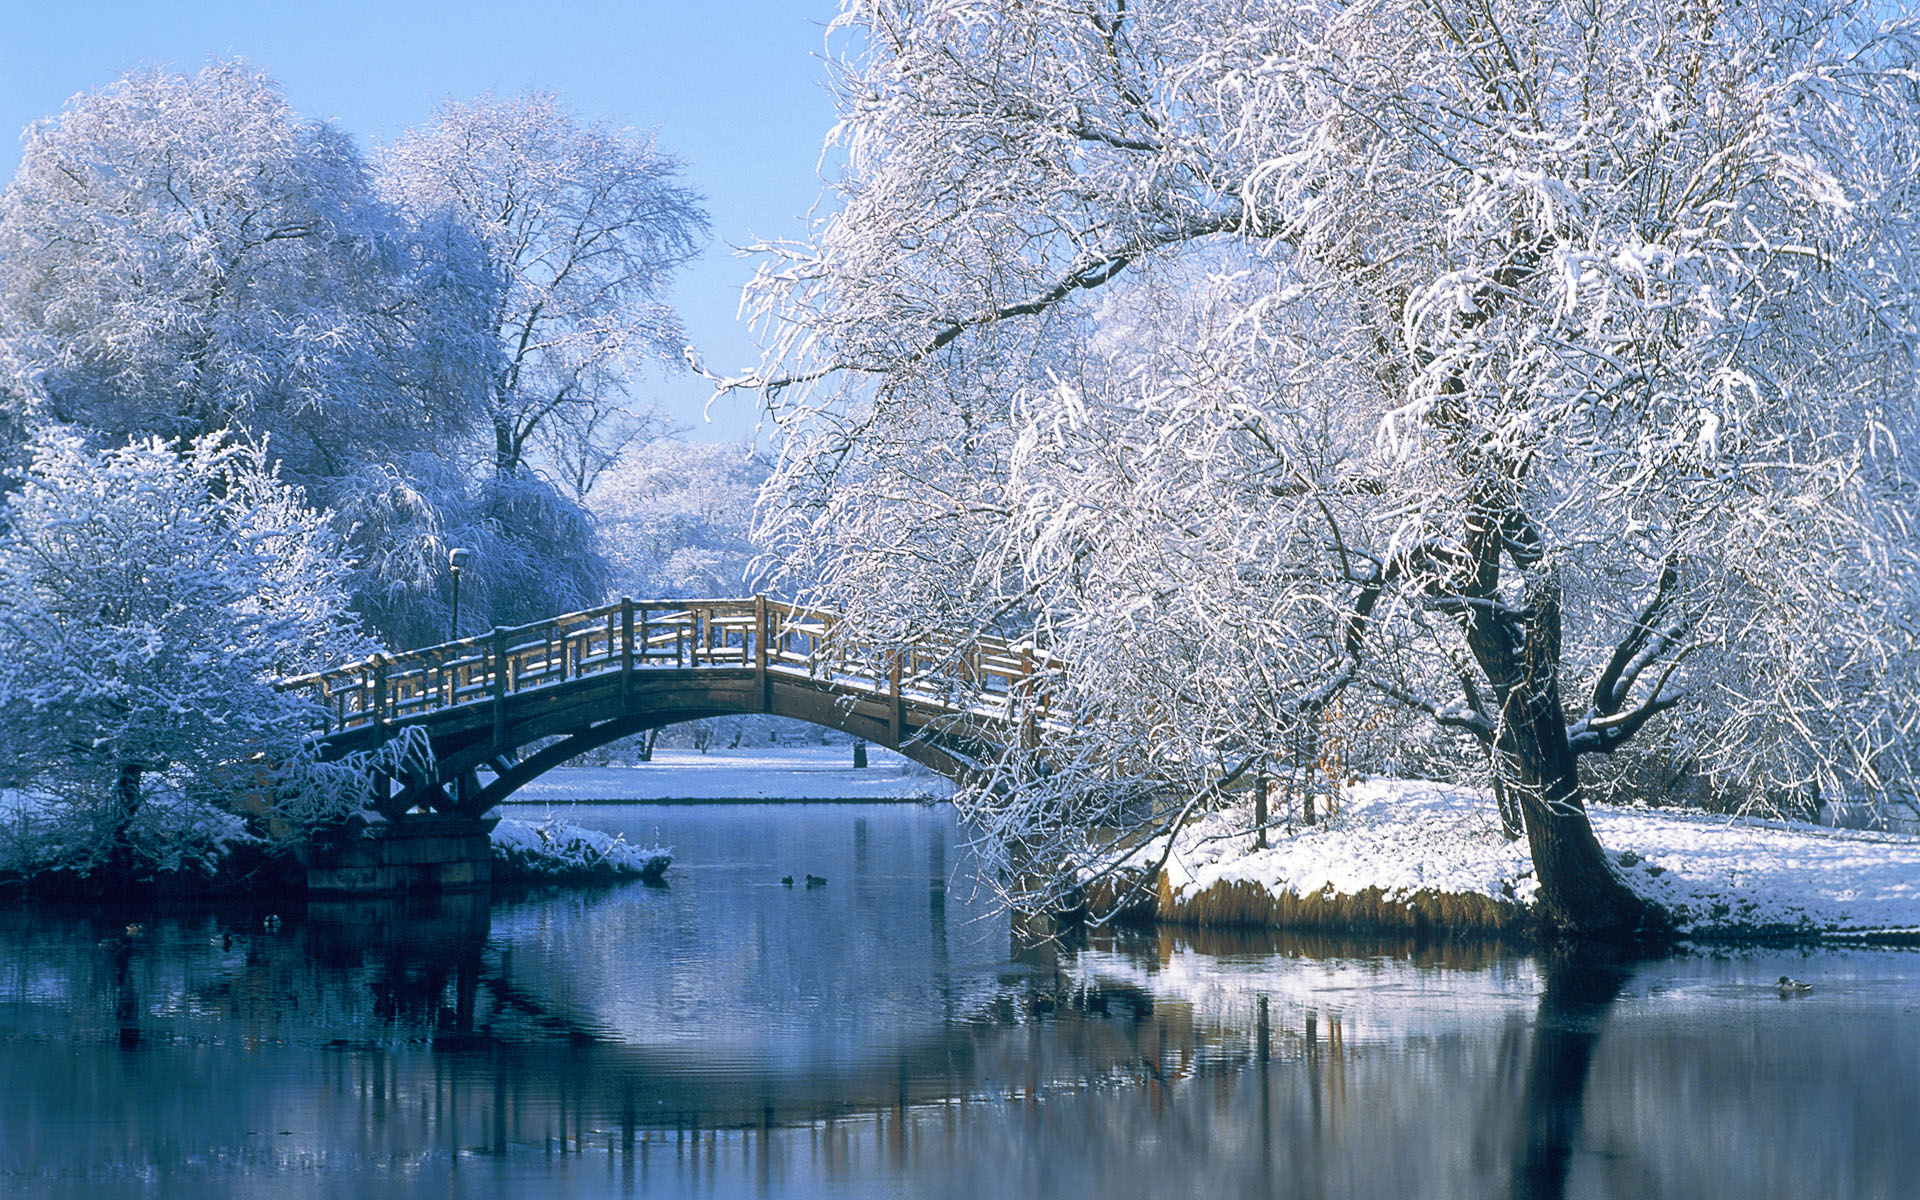 Beautiful Scenery of Winter Season